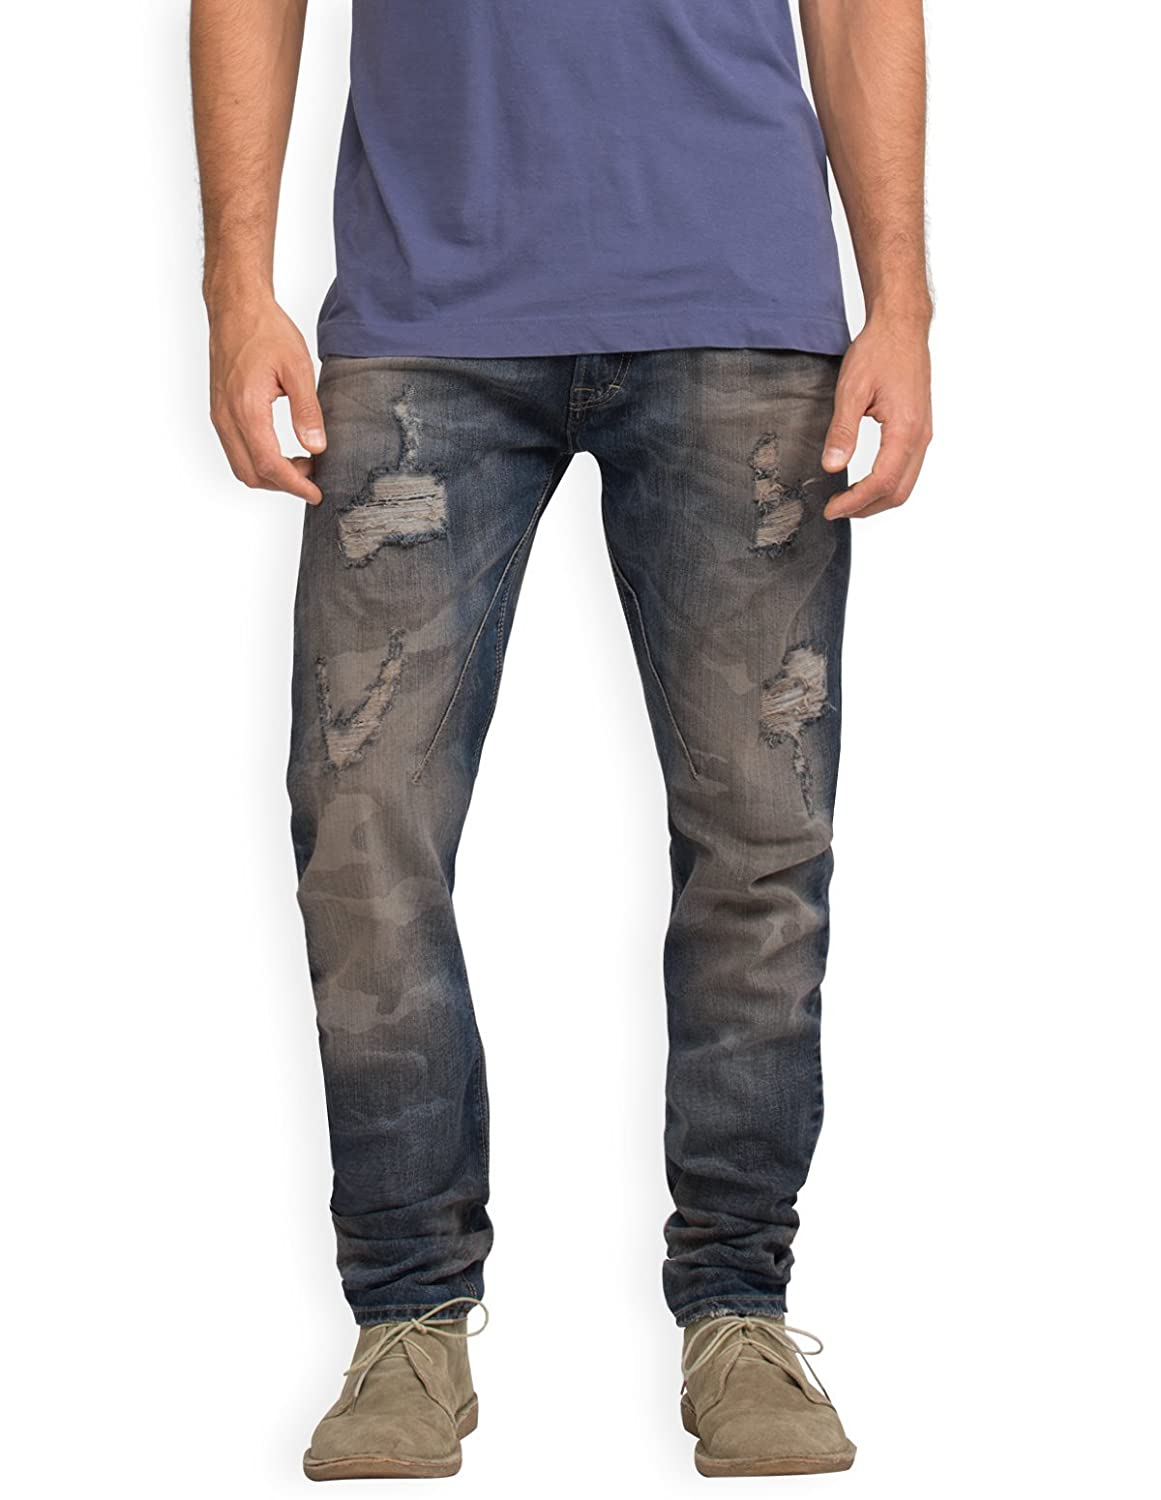 Neushop Men's Imperial P3723MAR09 Destroyed Ripped Distressed Denim Jeans Pants